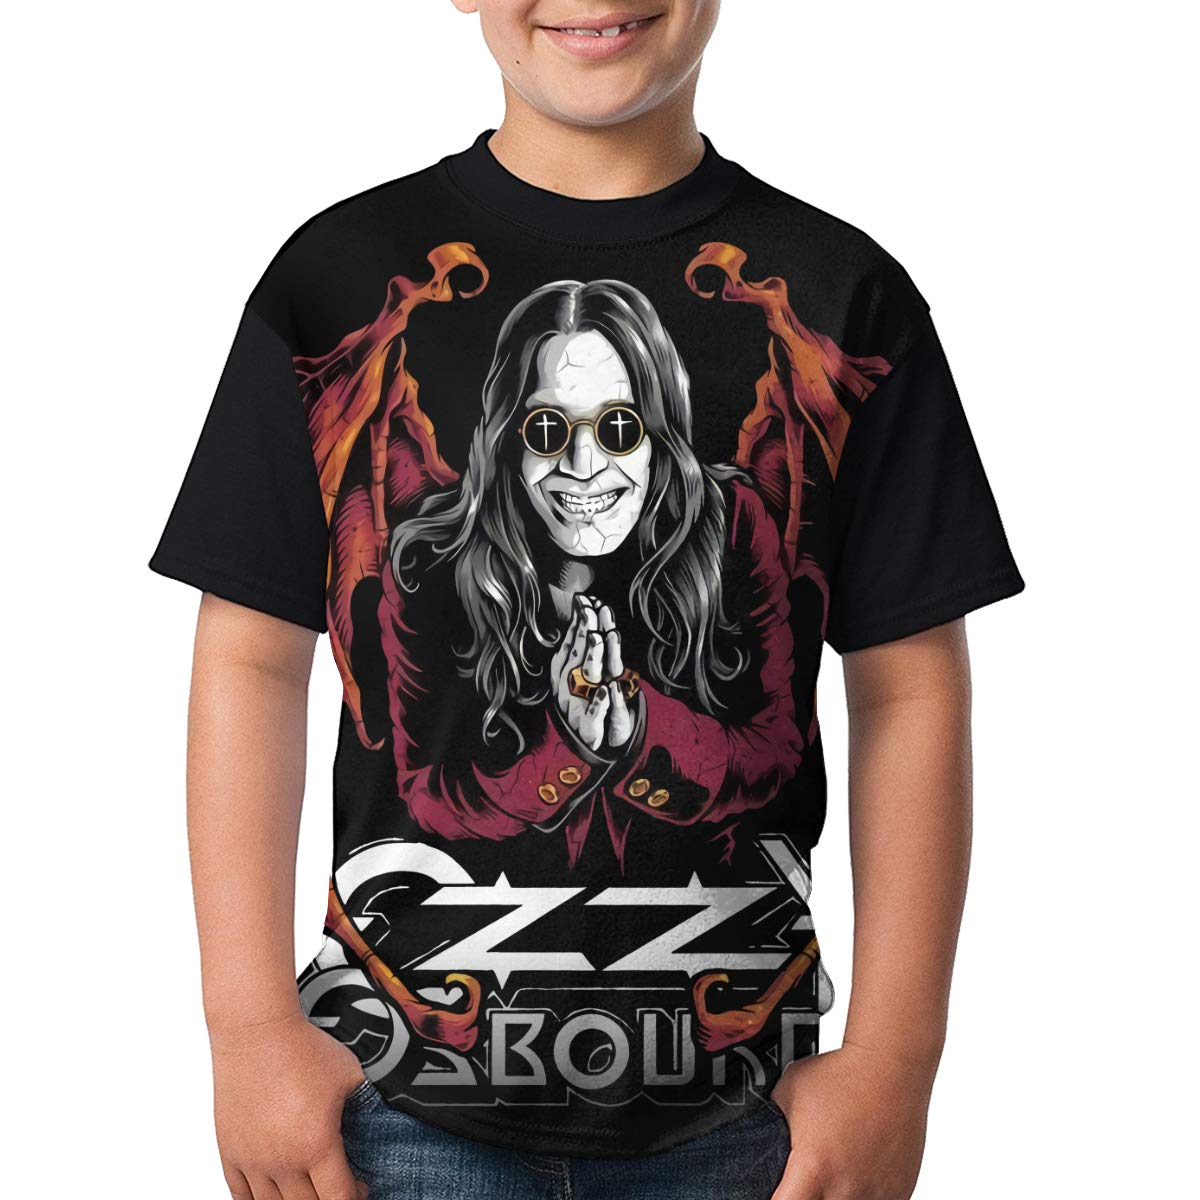 Kina D Wilson Ozzy Osbourne T Shirt Youth Boy Shirt Round Neck Short Sleeve Tees